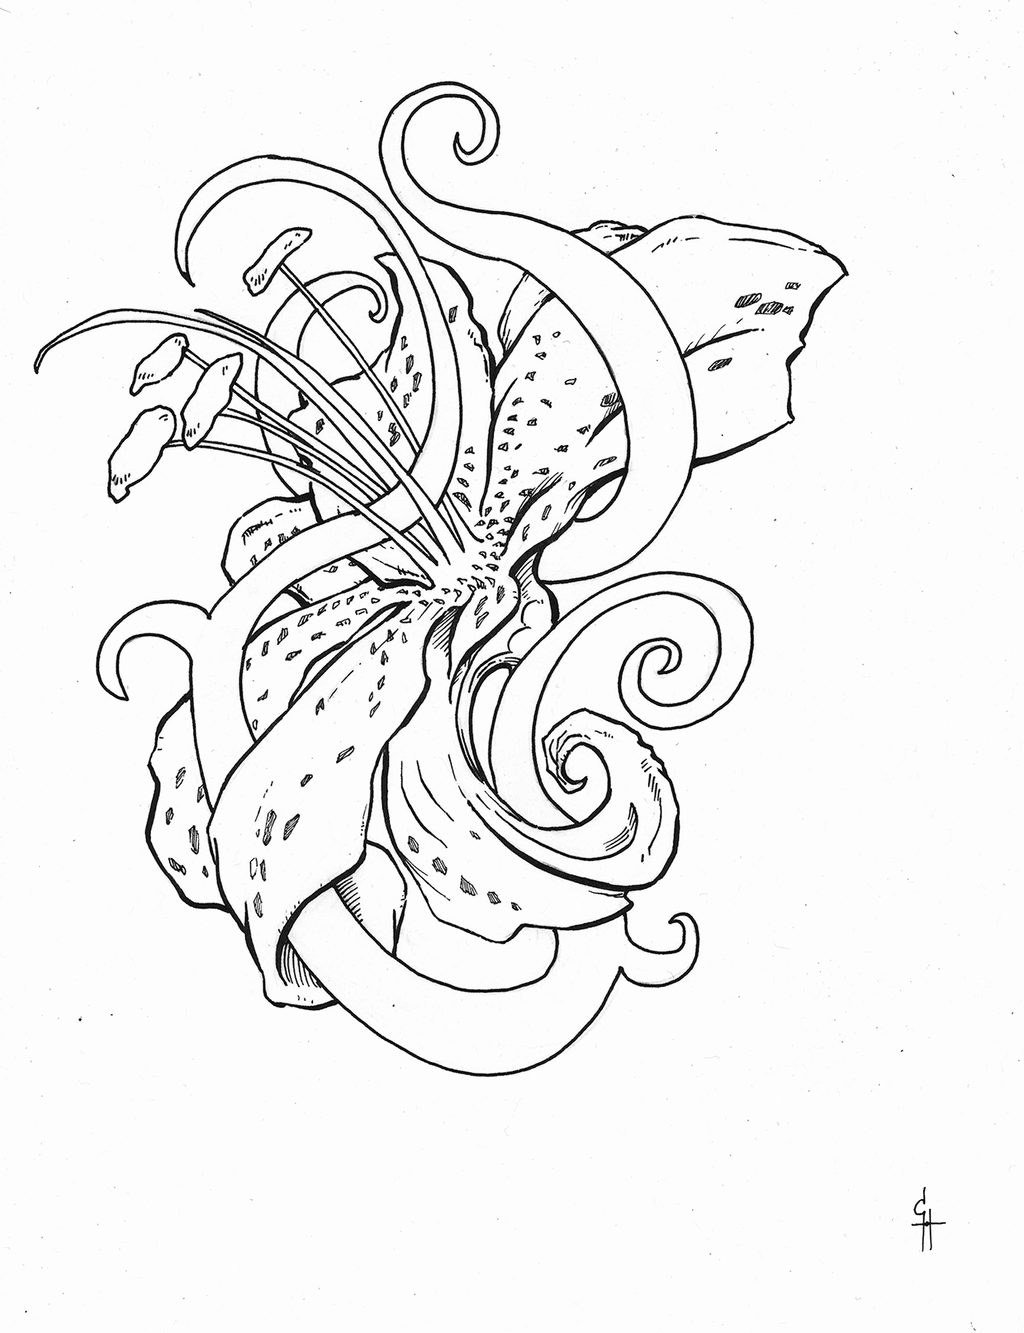 Line Drawing Tattoo Designs : Stargazer lilly tattoo design lines by questingraven on